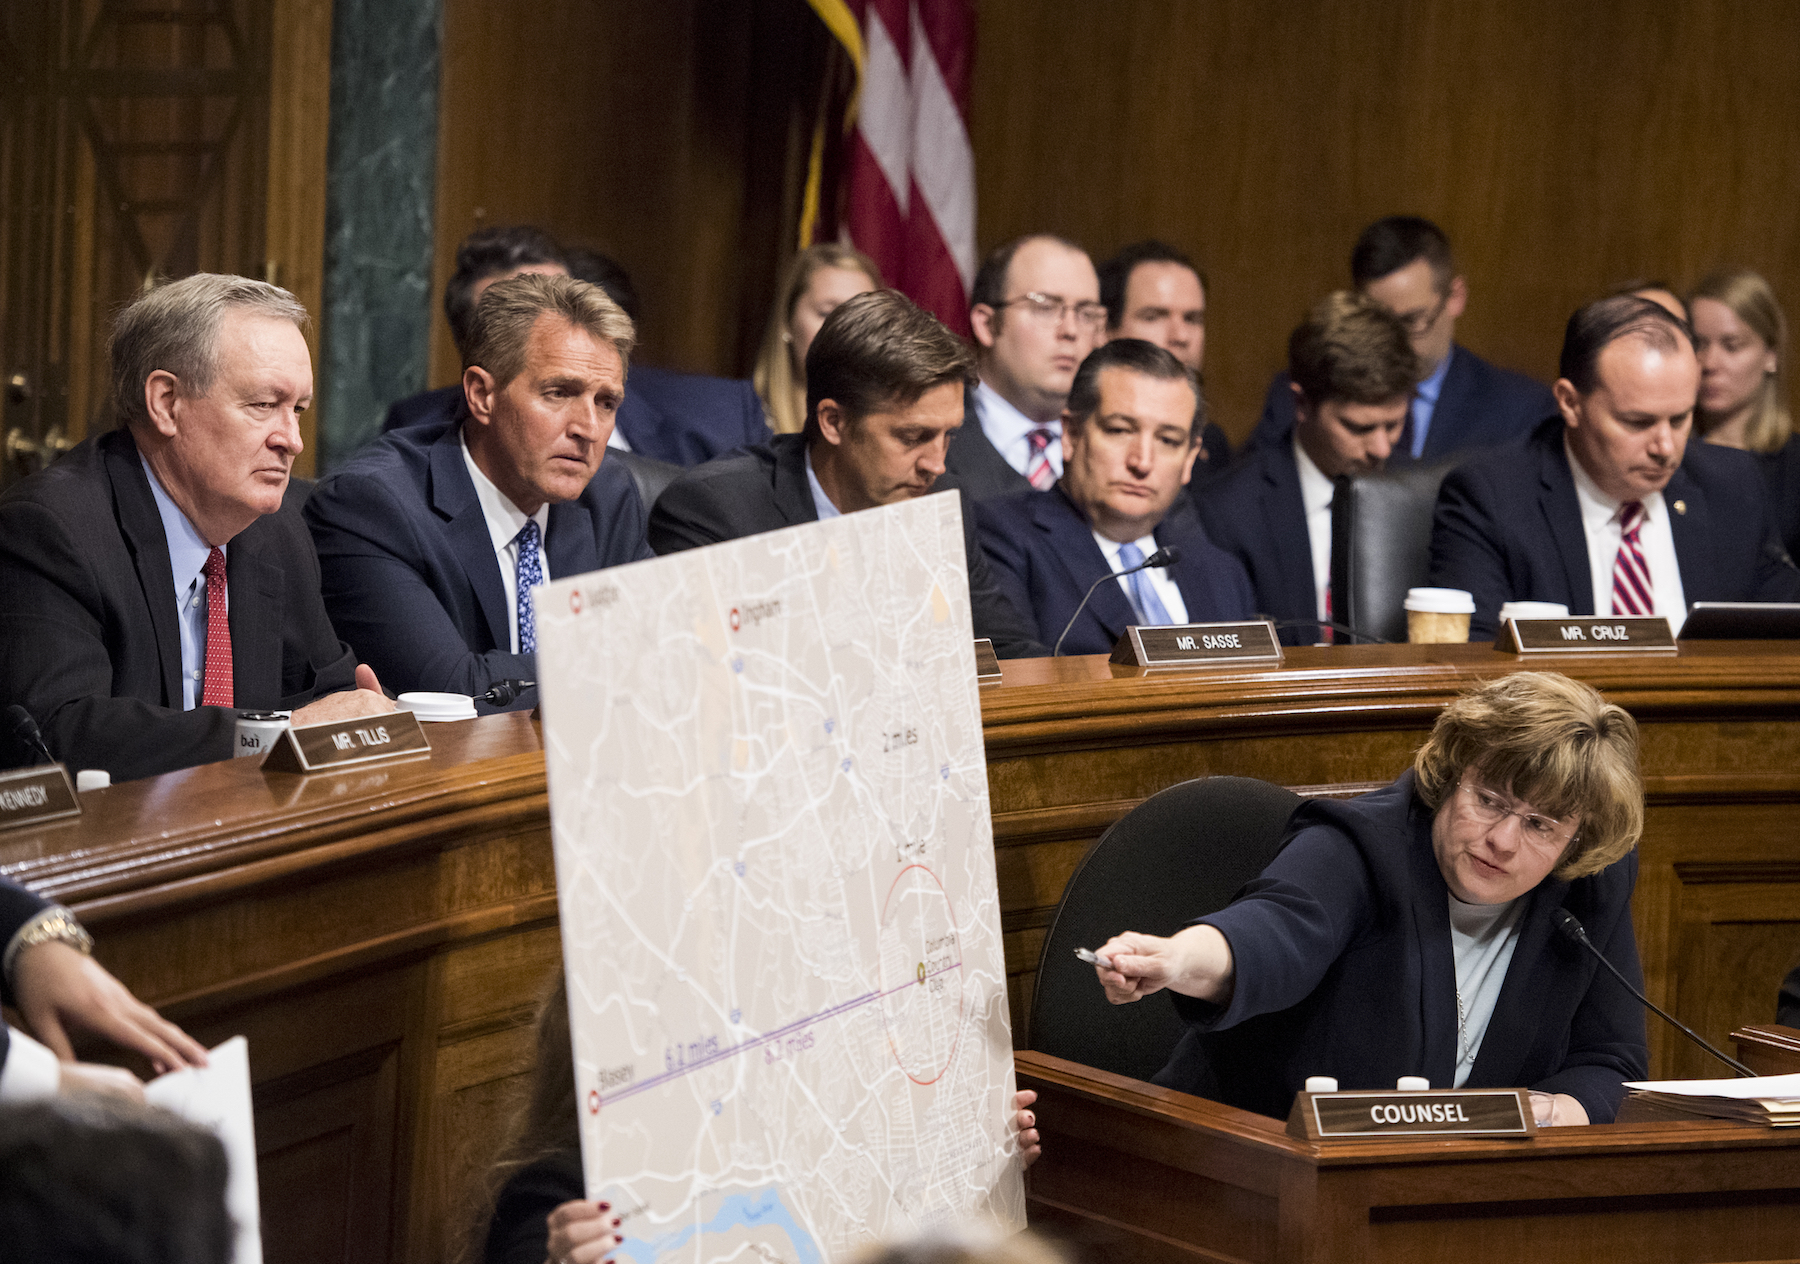 "<div class=""meta image-caption""><div class=""origin-logo origin-image ap""><span>AP</span></div><span class=""caption-text"">Phoenix prosecutor Rachel Mitchell points to a map as she questions to Christine Blasey Ford at the Senate Judiciary Committee hearing. (Tom Williams/Pool Image via AP)</span></div>"